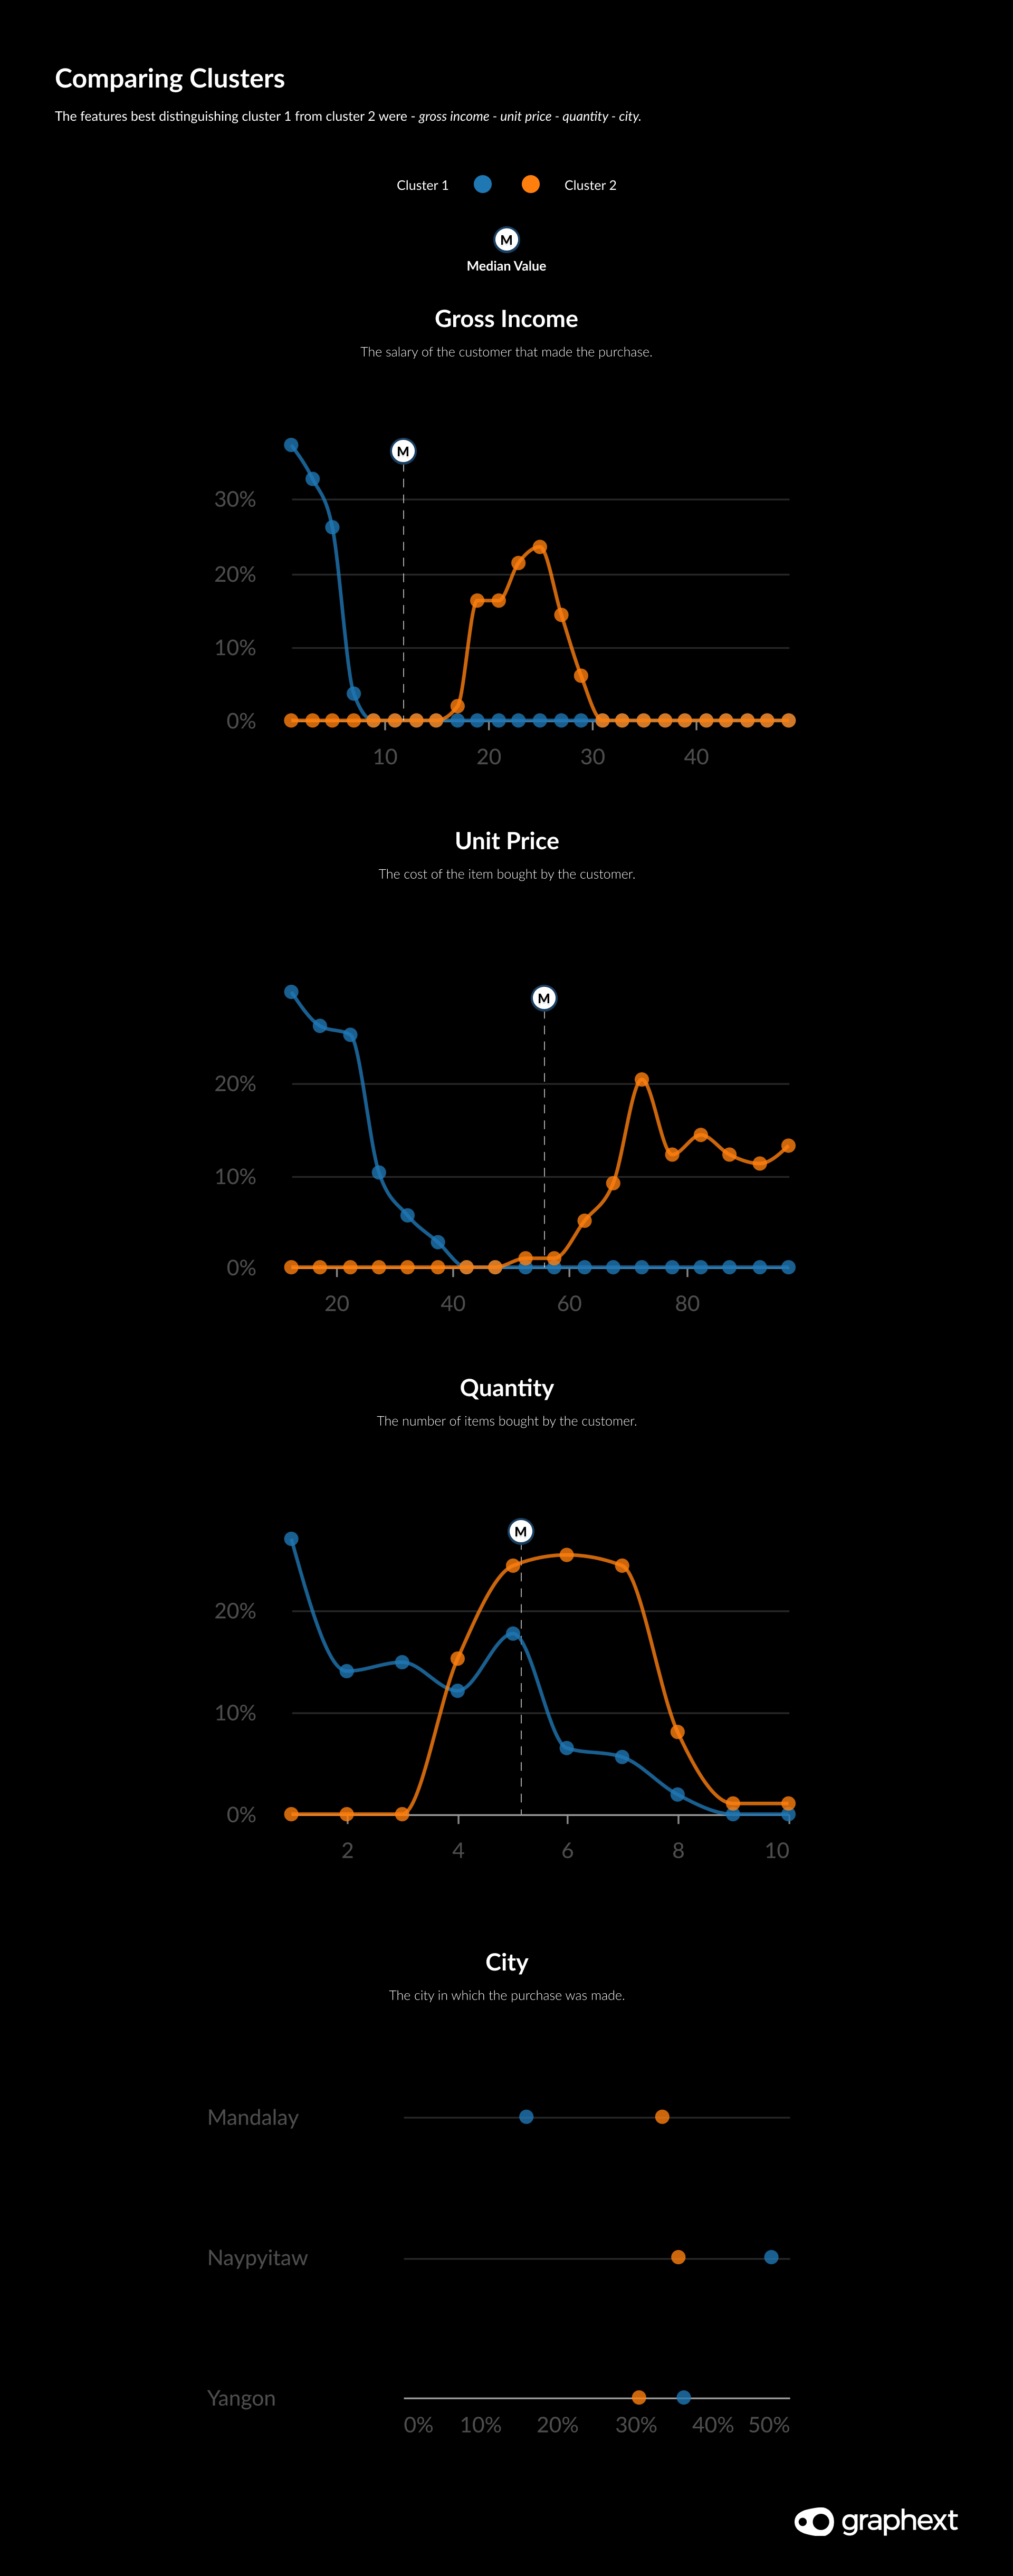 Charts showing how the income and location of customers differ between clusters.